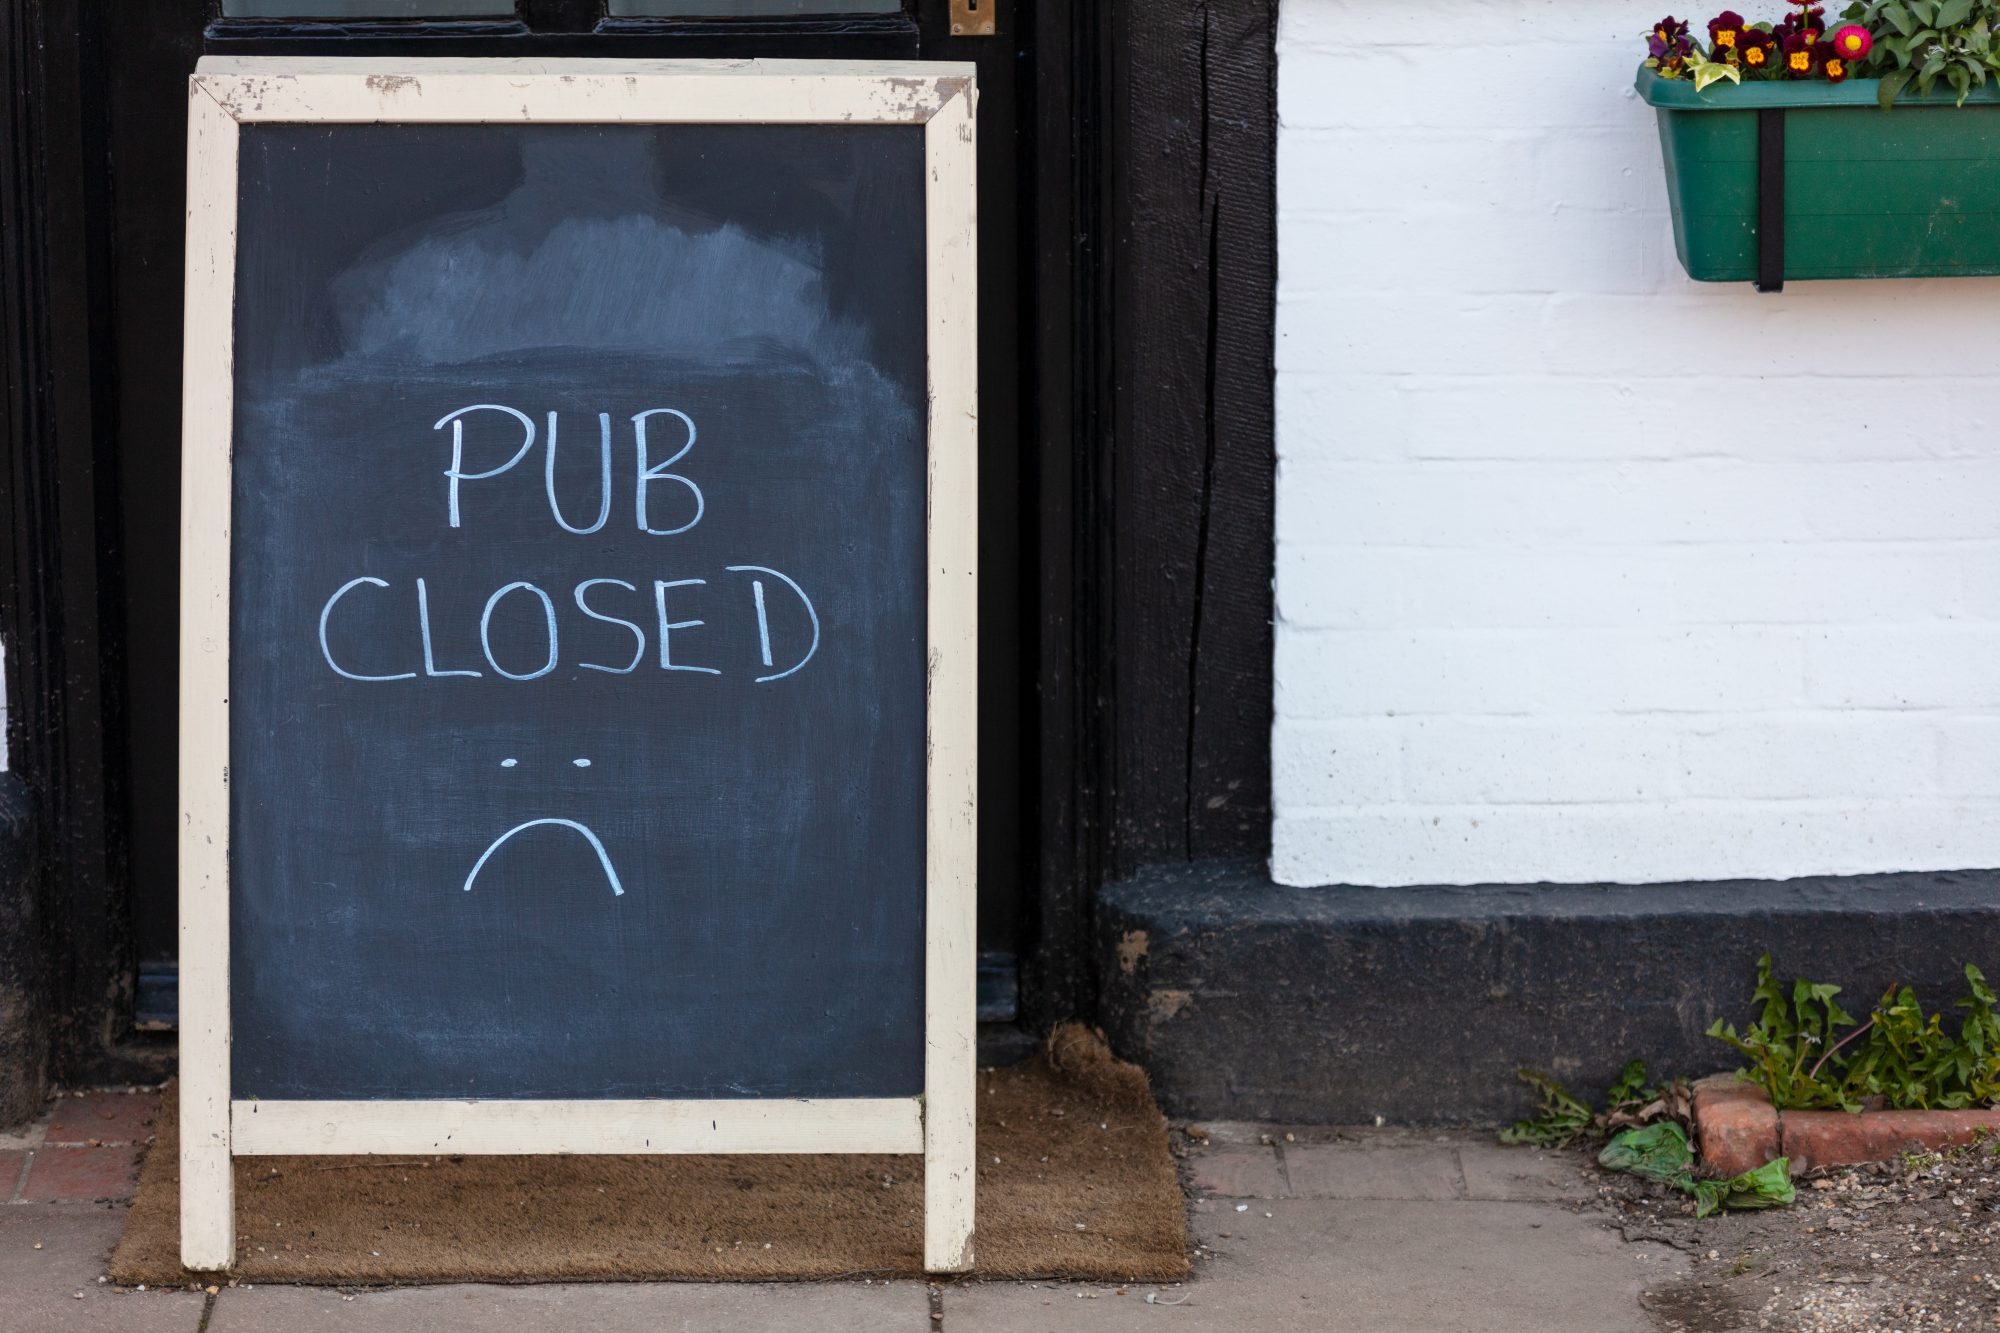 Pub Closed Blackboard or Chalkboard Sign Due to Coronavirus COVID-19 Pandemic